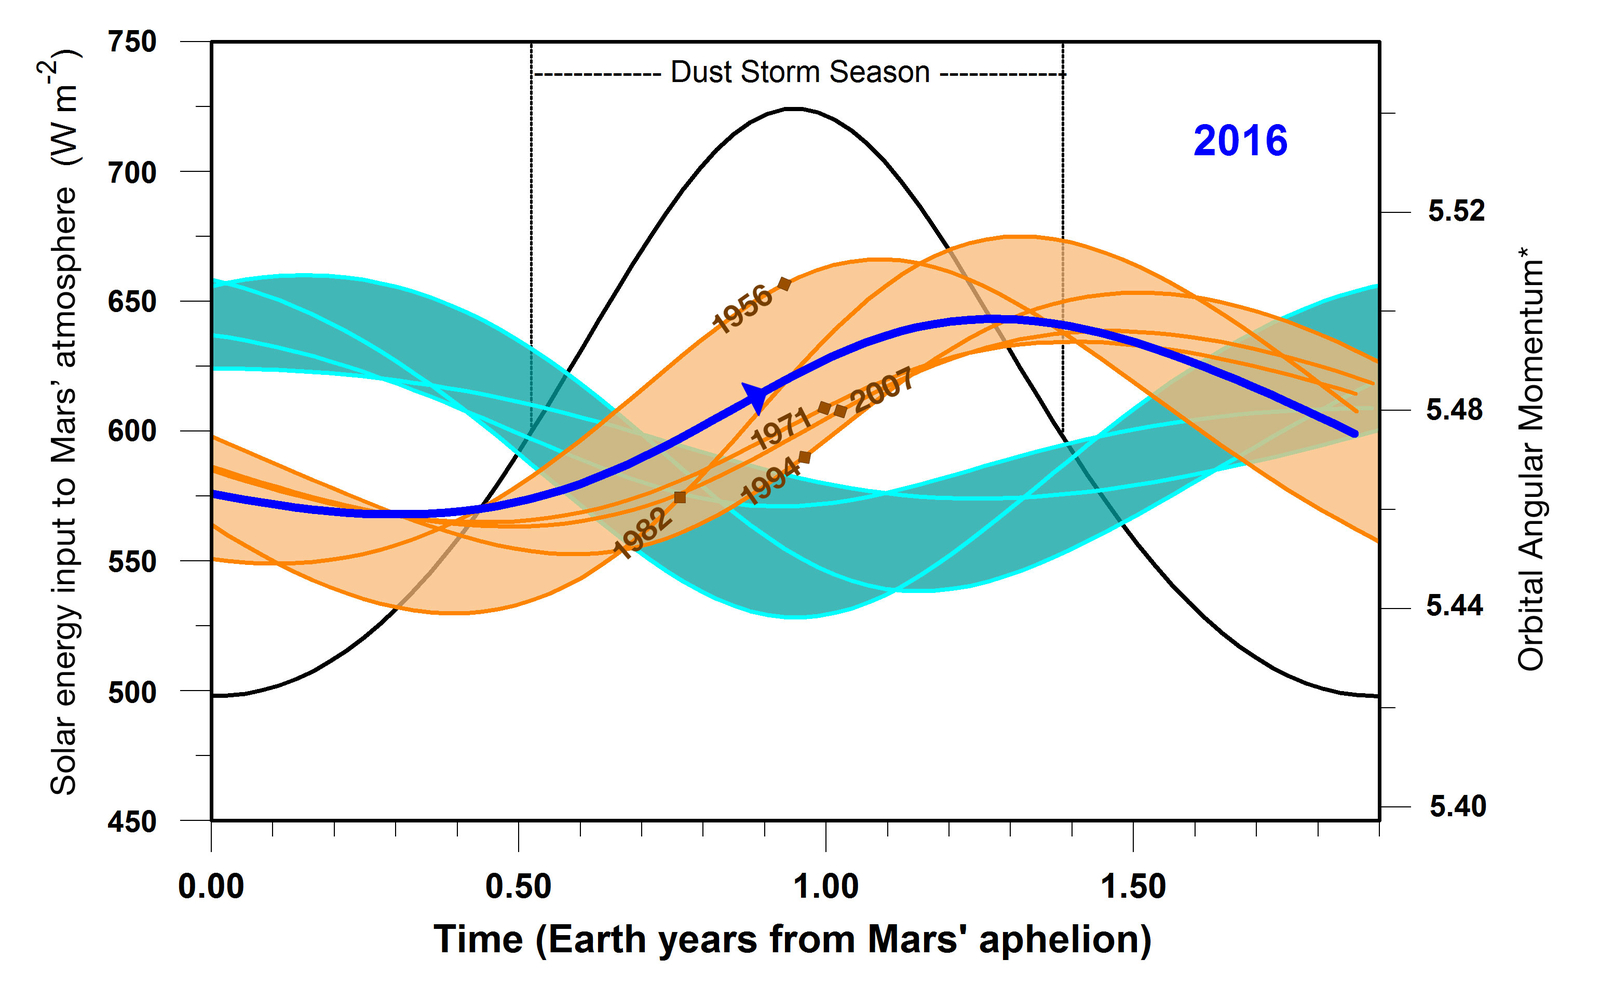 This graphic indicates a similarity between 2016 (dark blue line) and five past years in which Mars has experienced global dust storms (orange lines and band), compared to years with no global dust storm (blue-green lines and band). The horizontal scale is time-of-year on Mars